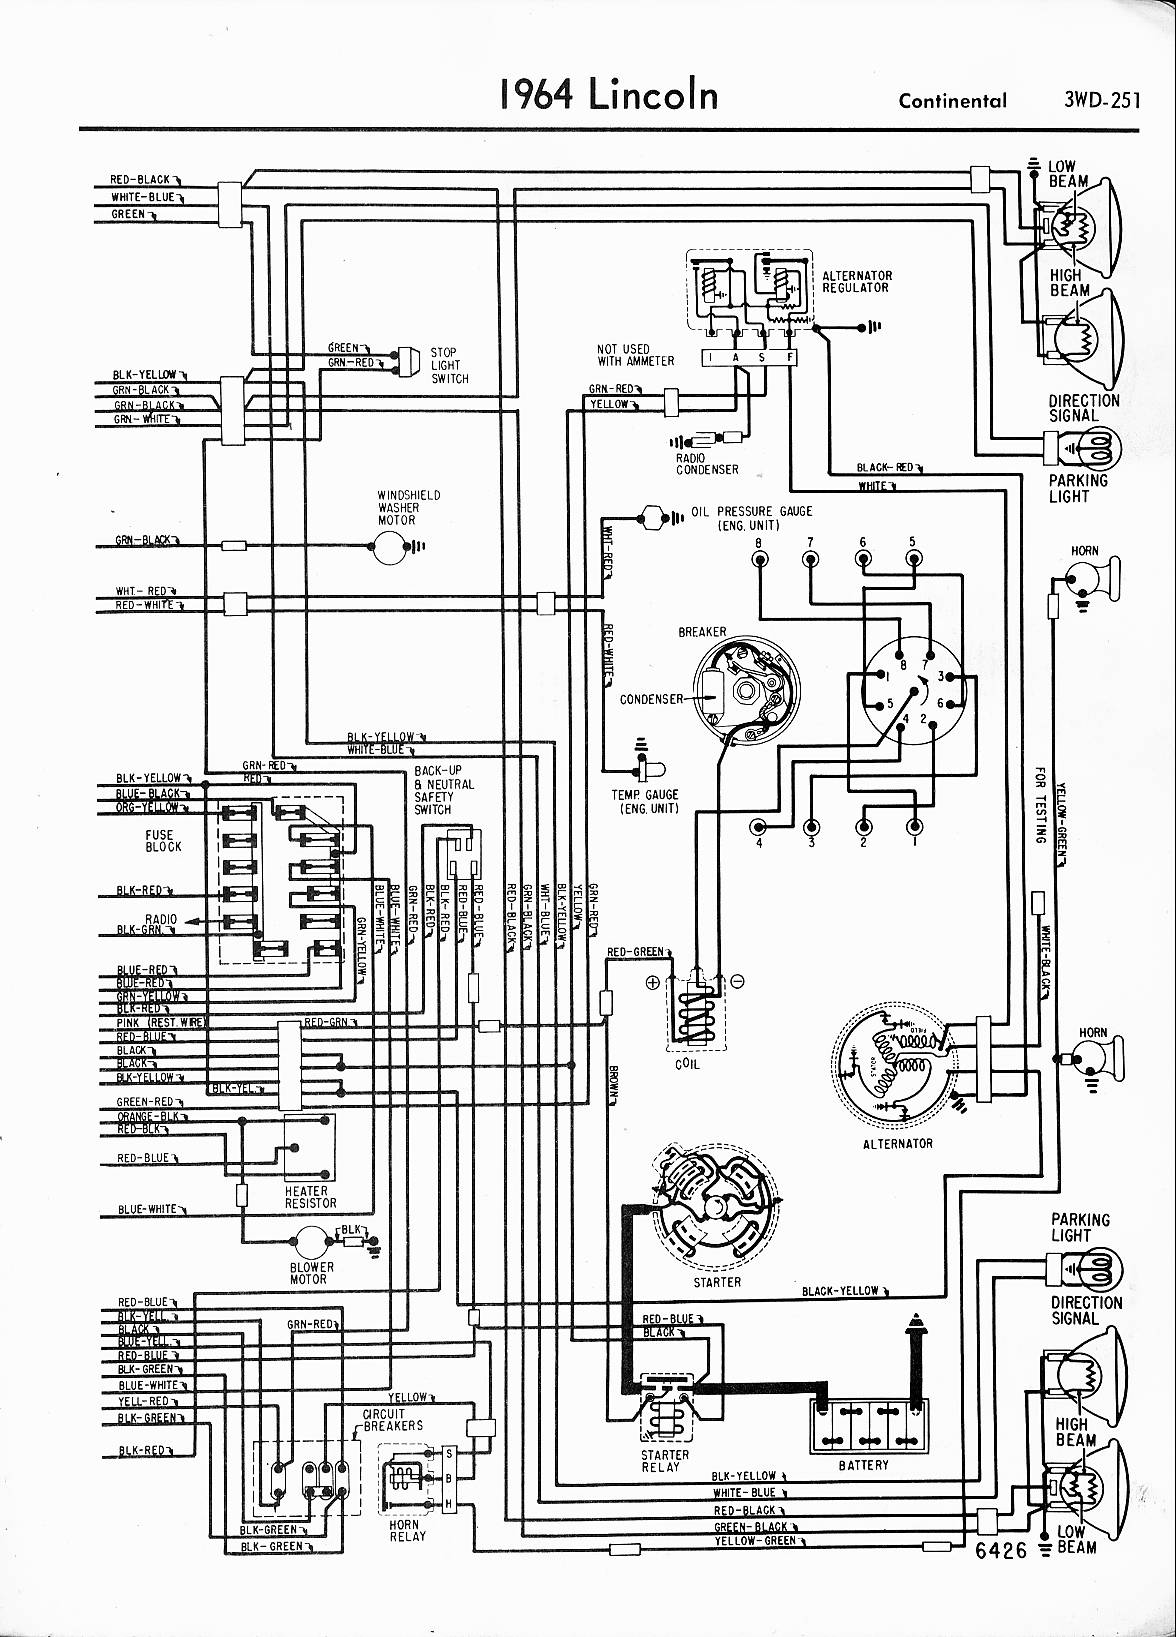 Dodge Engine Configuration furthermore Dodge Grand Caravan 2008 Engine Diagram as well Dodge D100 600 And W100 500 Turn Signal further Viewtopic as well Wiring Diagram Needed Hei Voltmeter Mercuiser 288 350 Sbc. on 1971 dodge charger wiring diagram